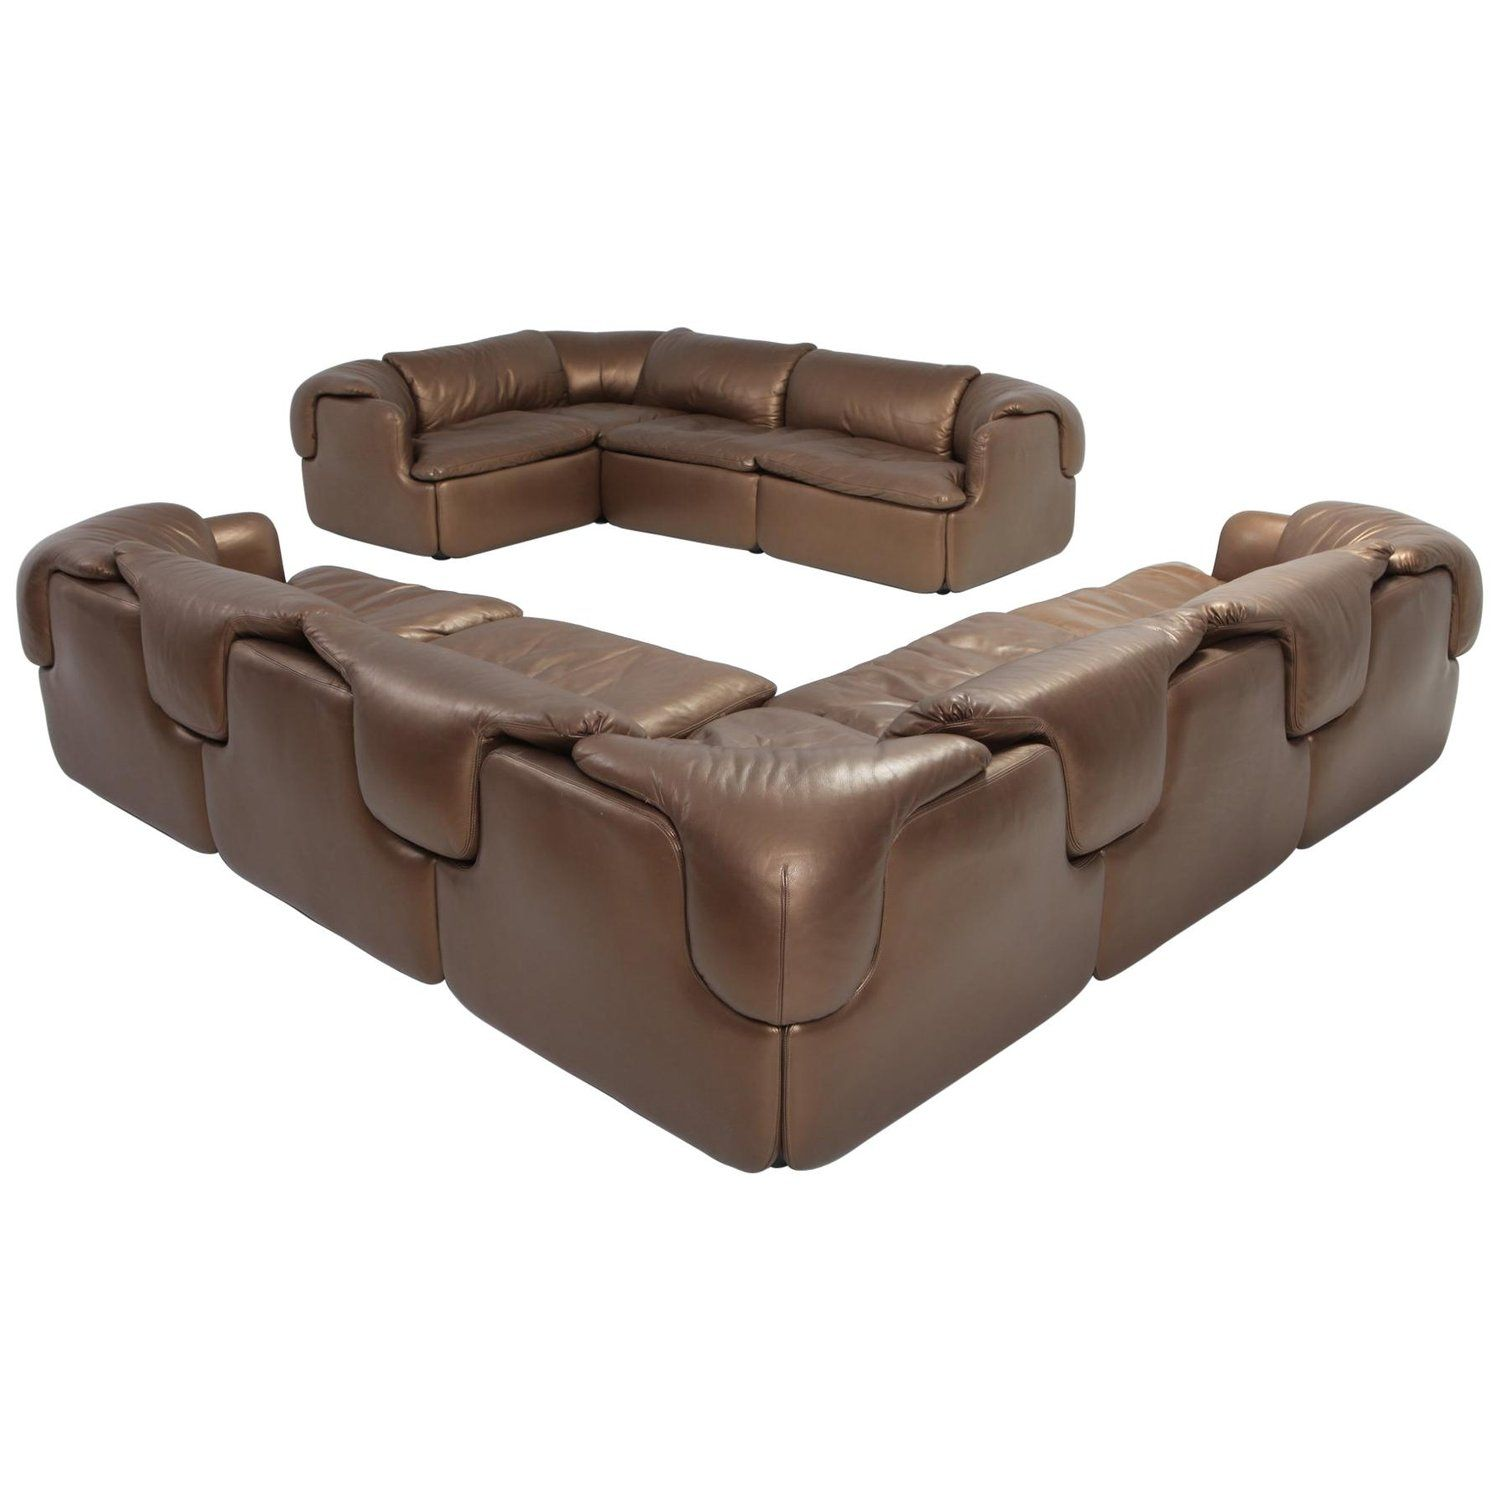 Bronze Leather Saporiti High End Sectional Sofa Confidential